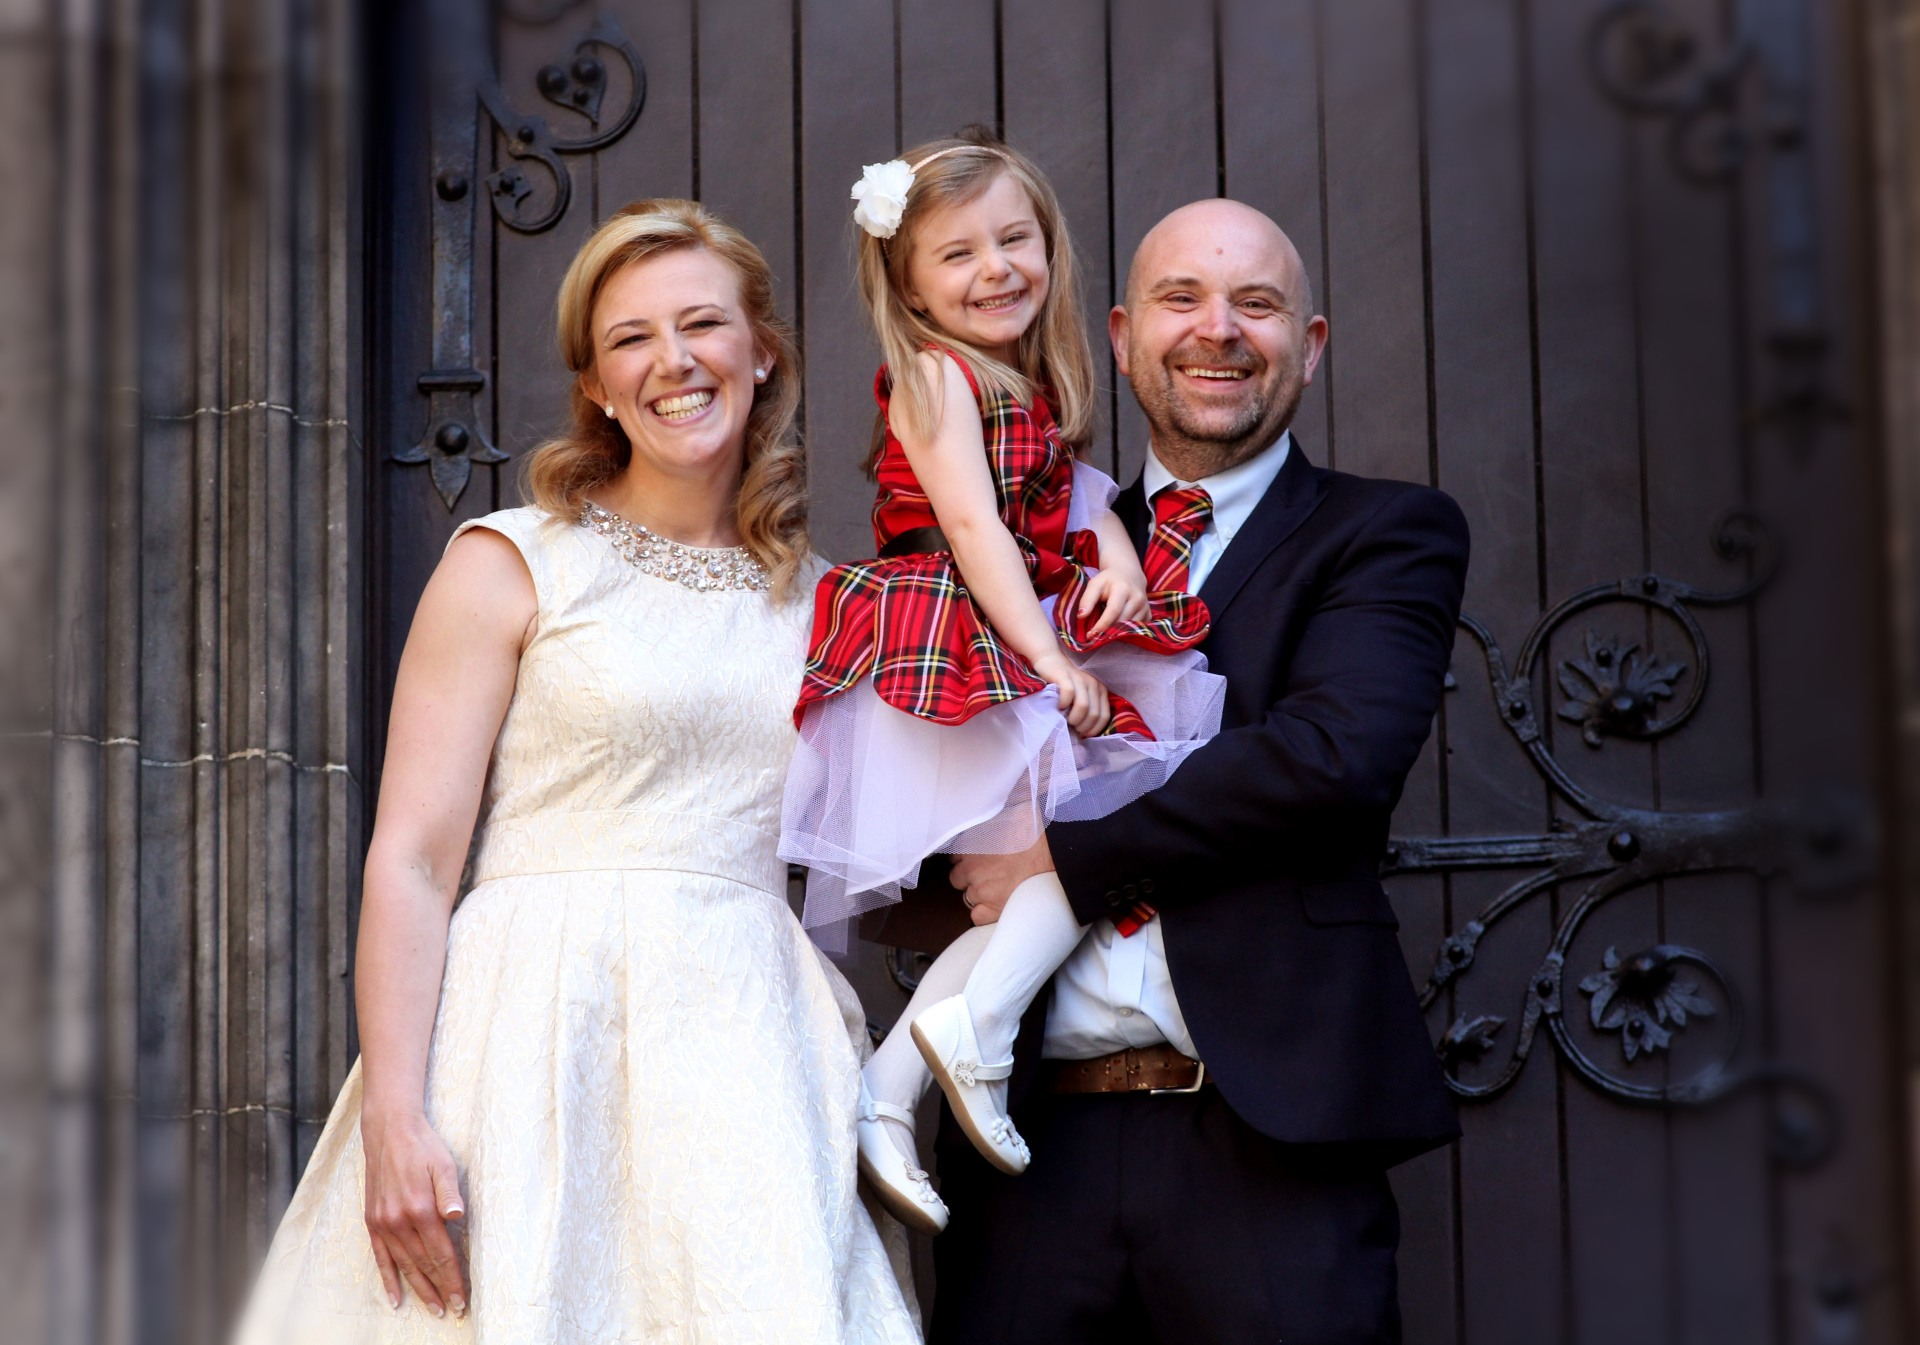 Edinburgh Wedding Photography - Cheryl and Neil at Edinburgh City Chambers